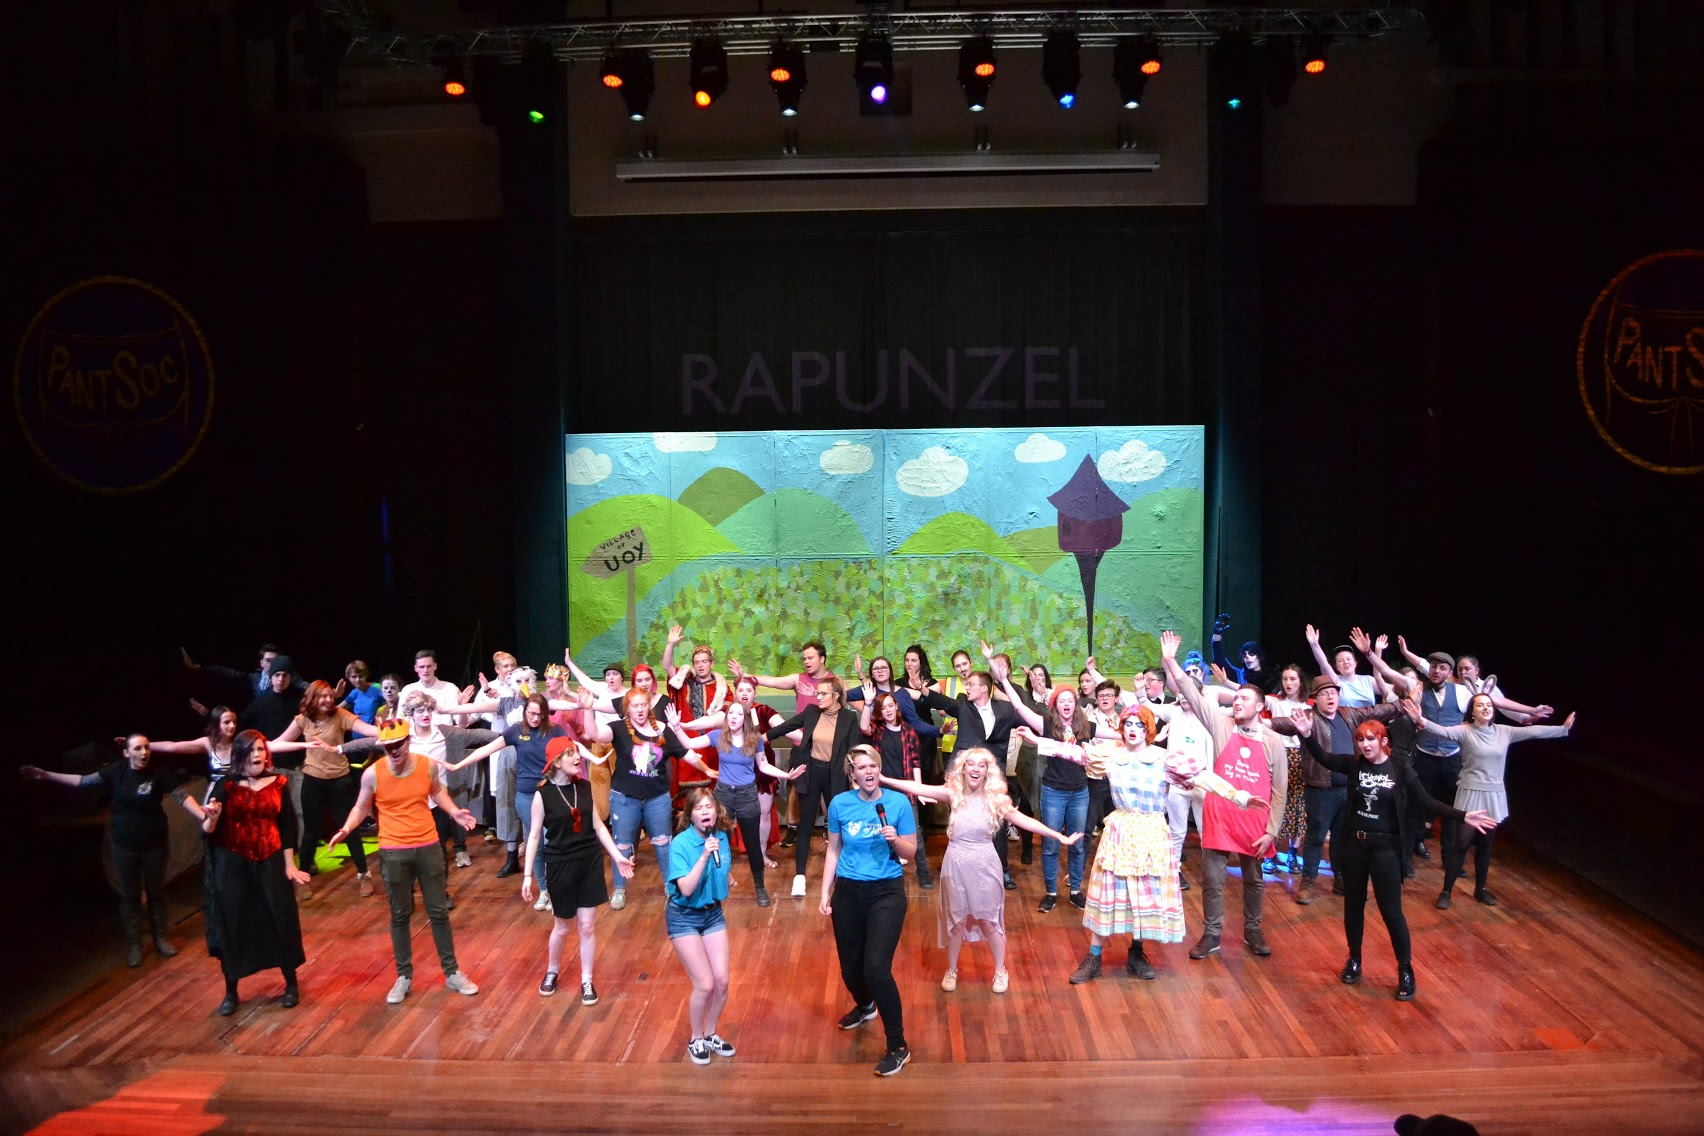 This is a photo from PantSoc's most recent performance in Central Hall: Rapunzel the Pantomime!